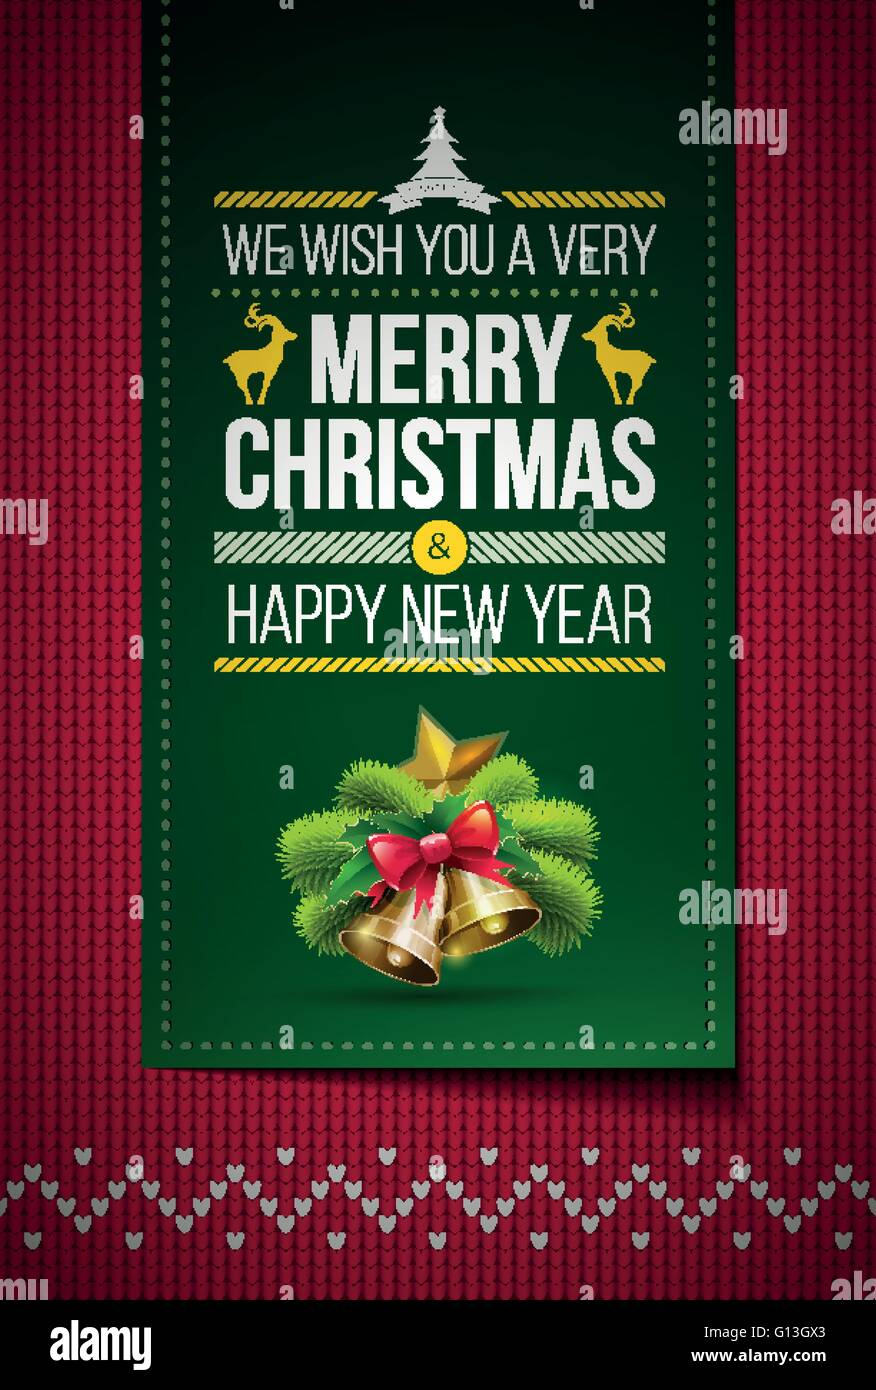 merry christmas and happy new year message on northern style vector knitted pattern elements are layered separately in vector